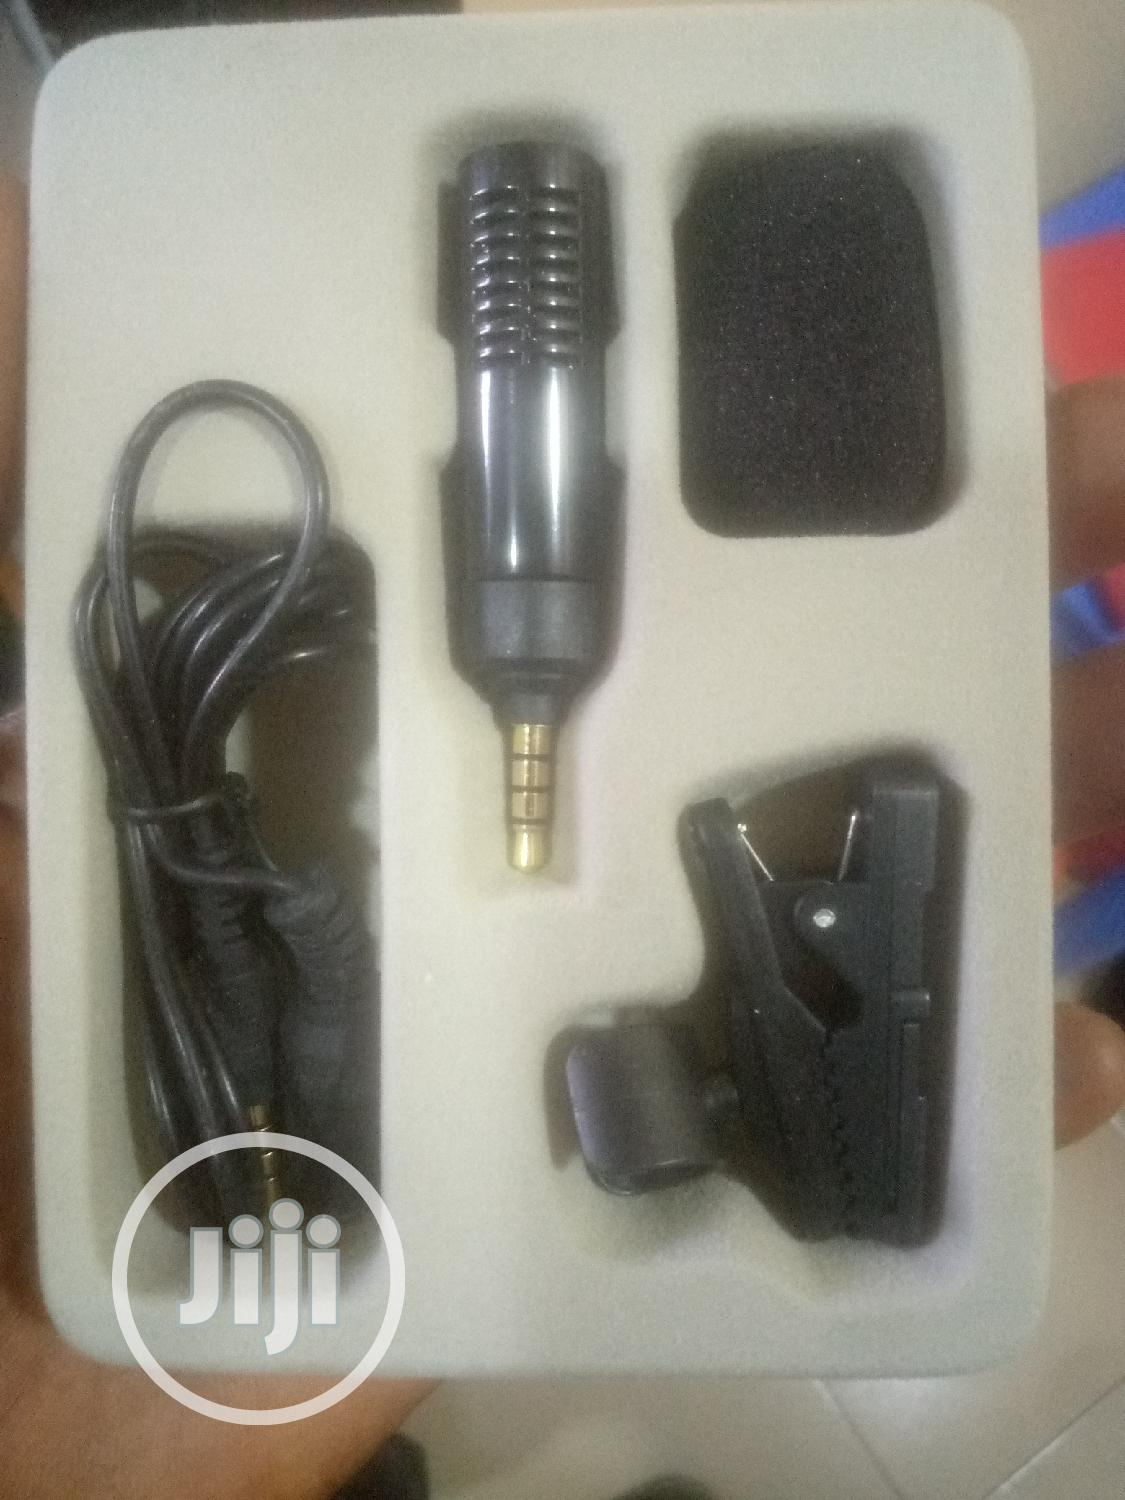 Mic For Mobile Phone Recording   Accessories for Mobile Phones & Tablets for sale in Port-Harcourt, Rivers State, Nigeria